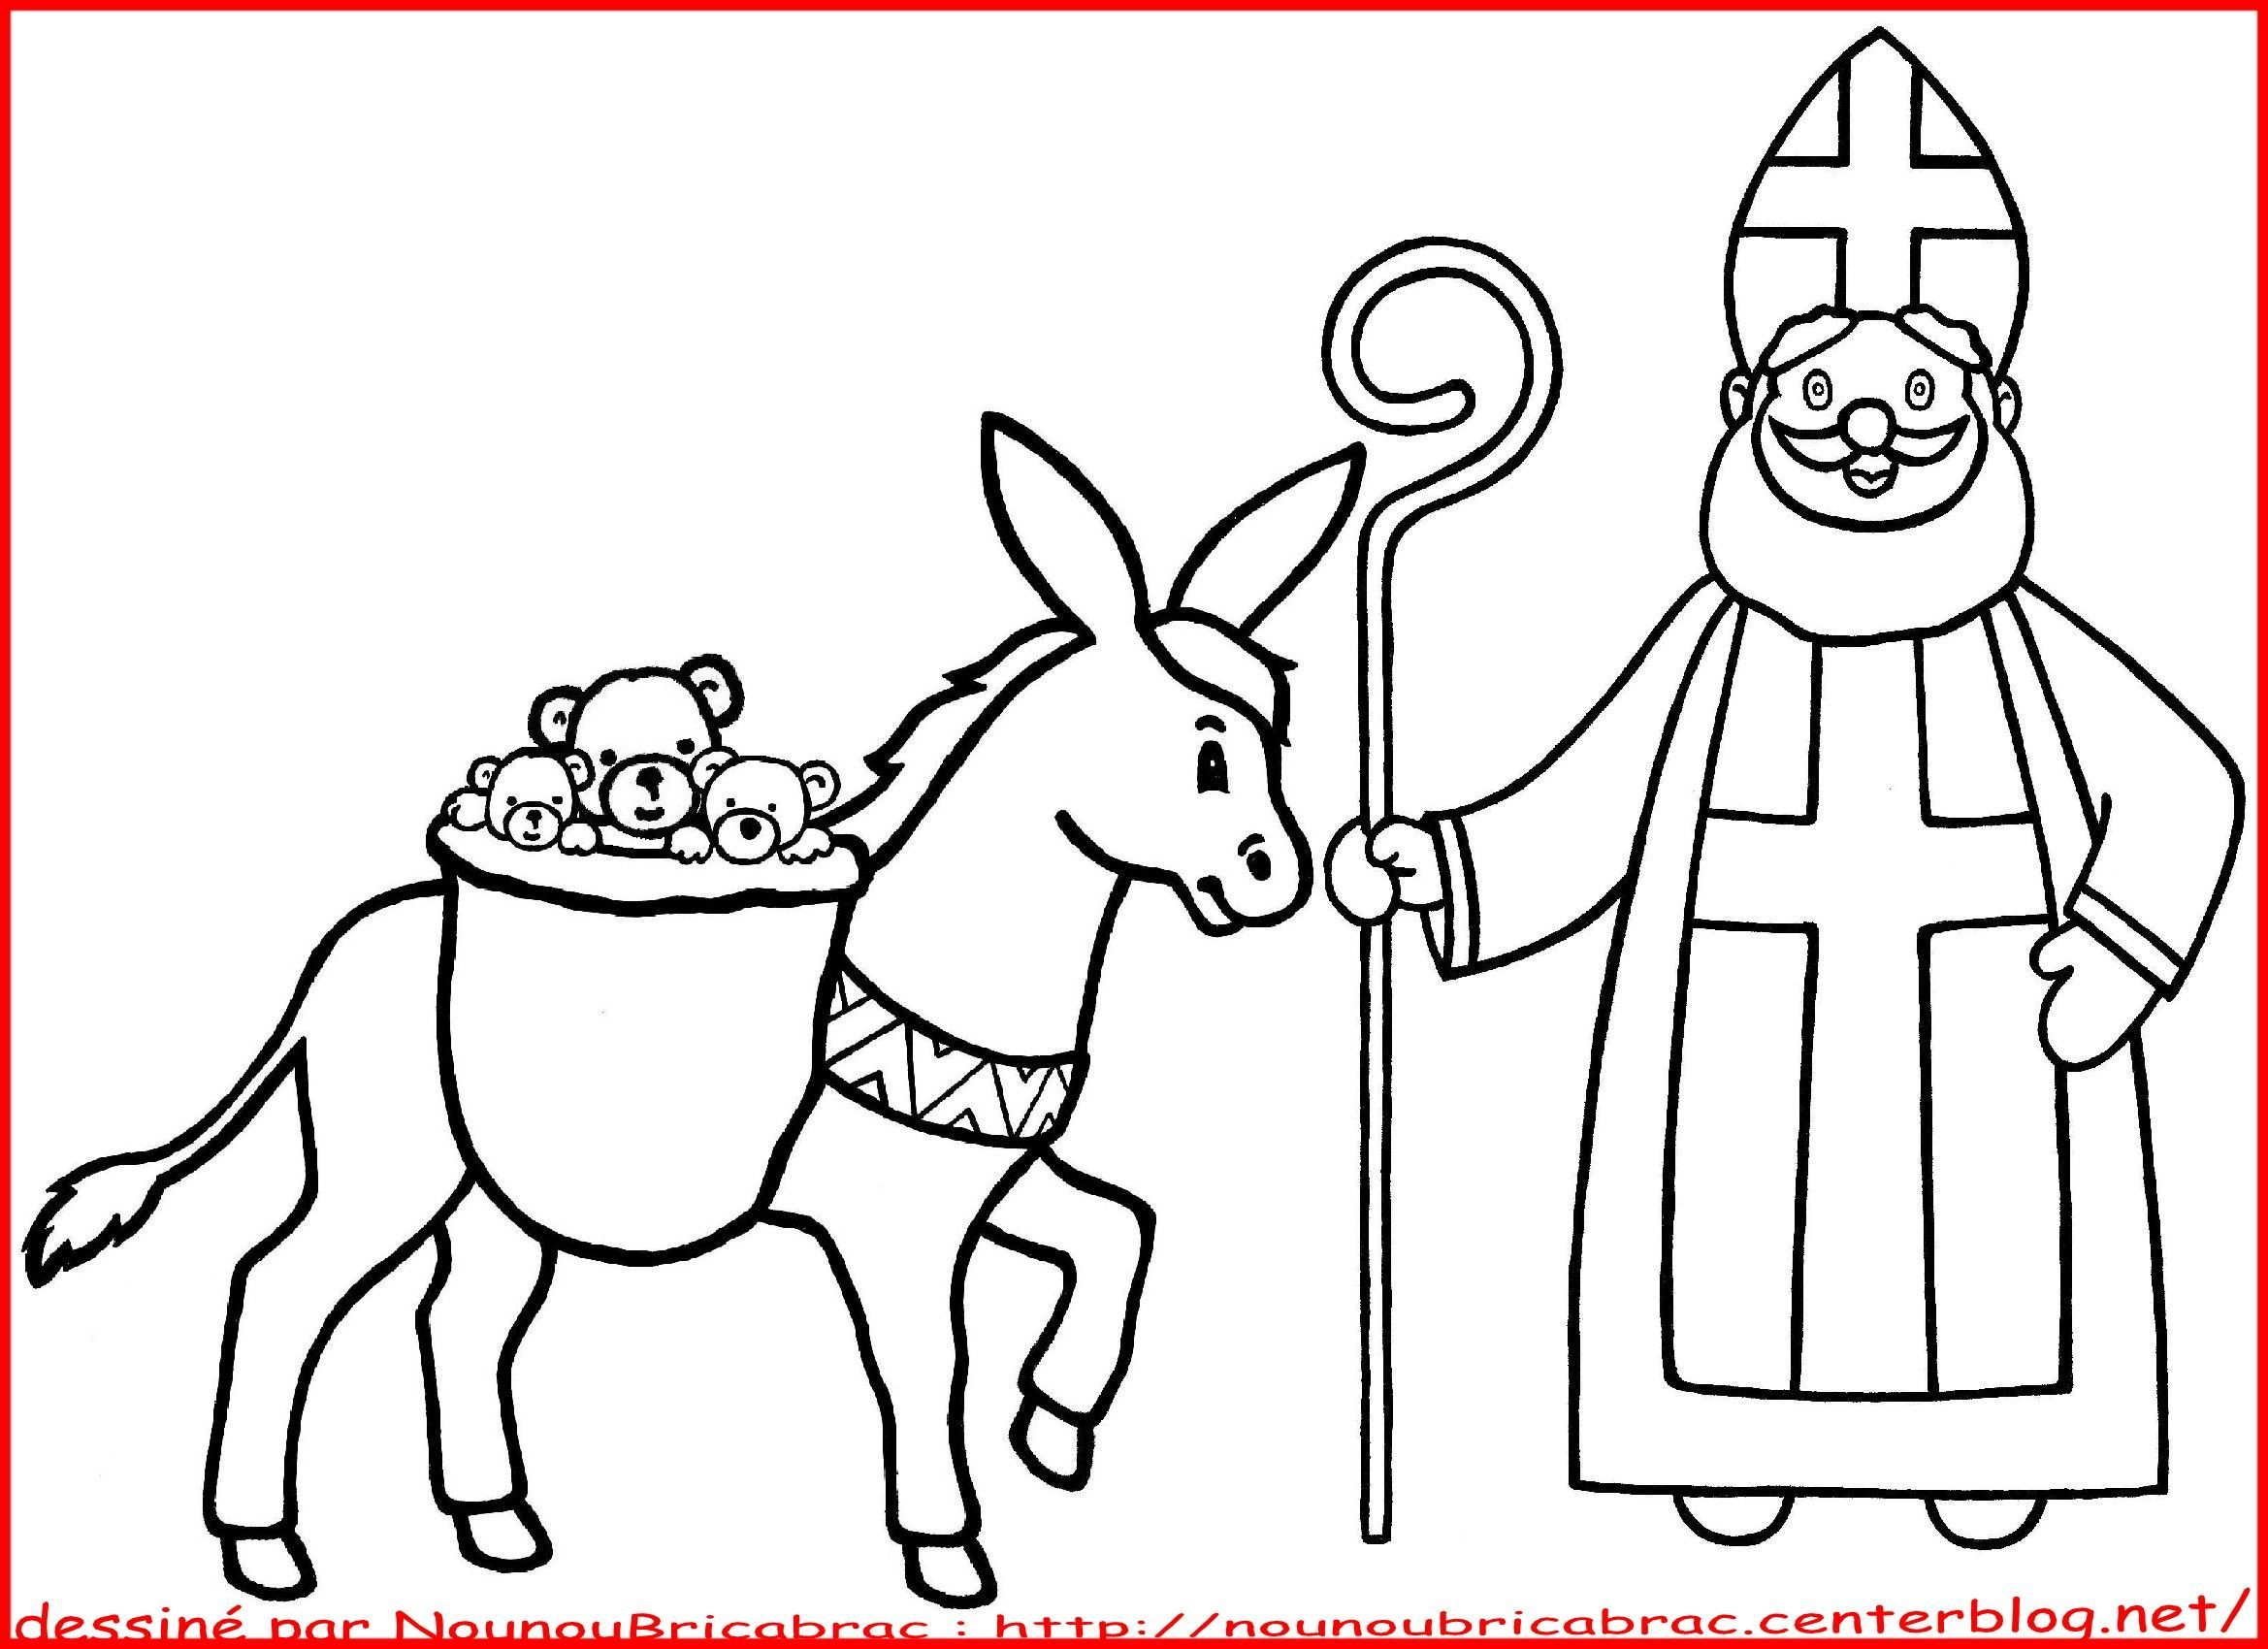 Coloriages saint nicolas - Coloriage de saint nicolas ...